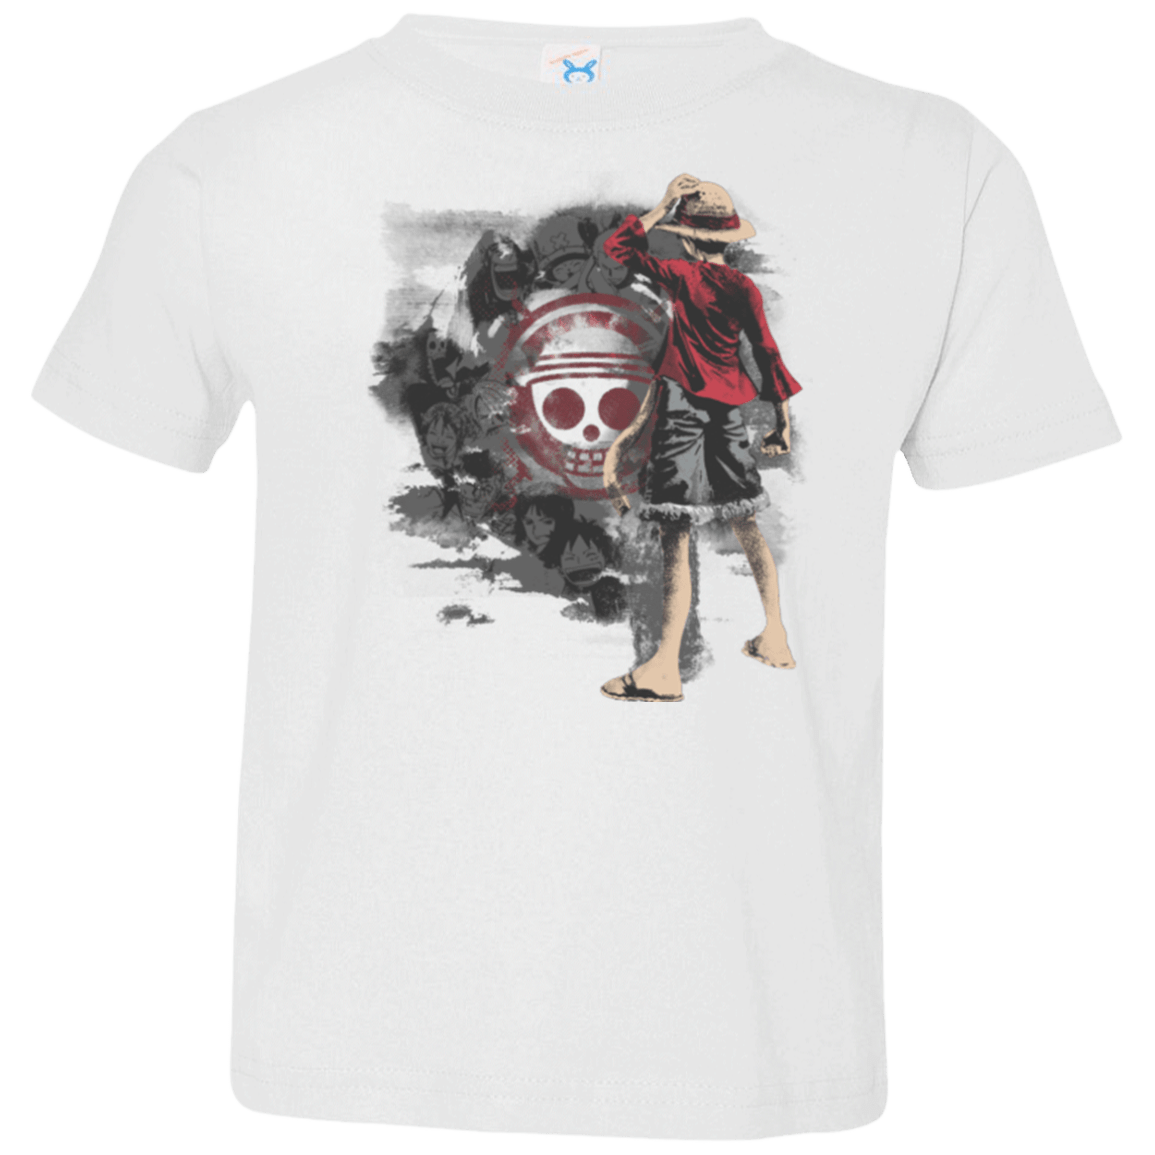 T-Shirts White / 2T Straw hats Toddler Premium T-Shirt